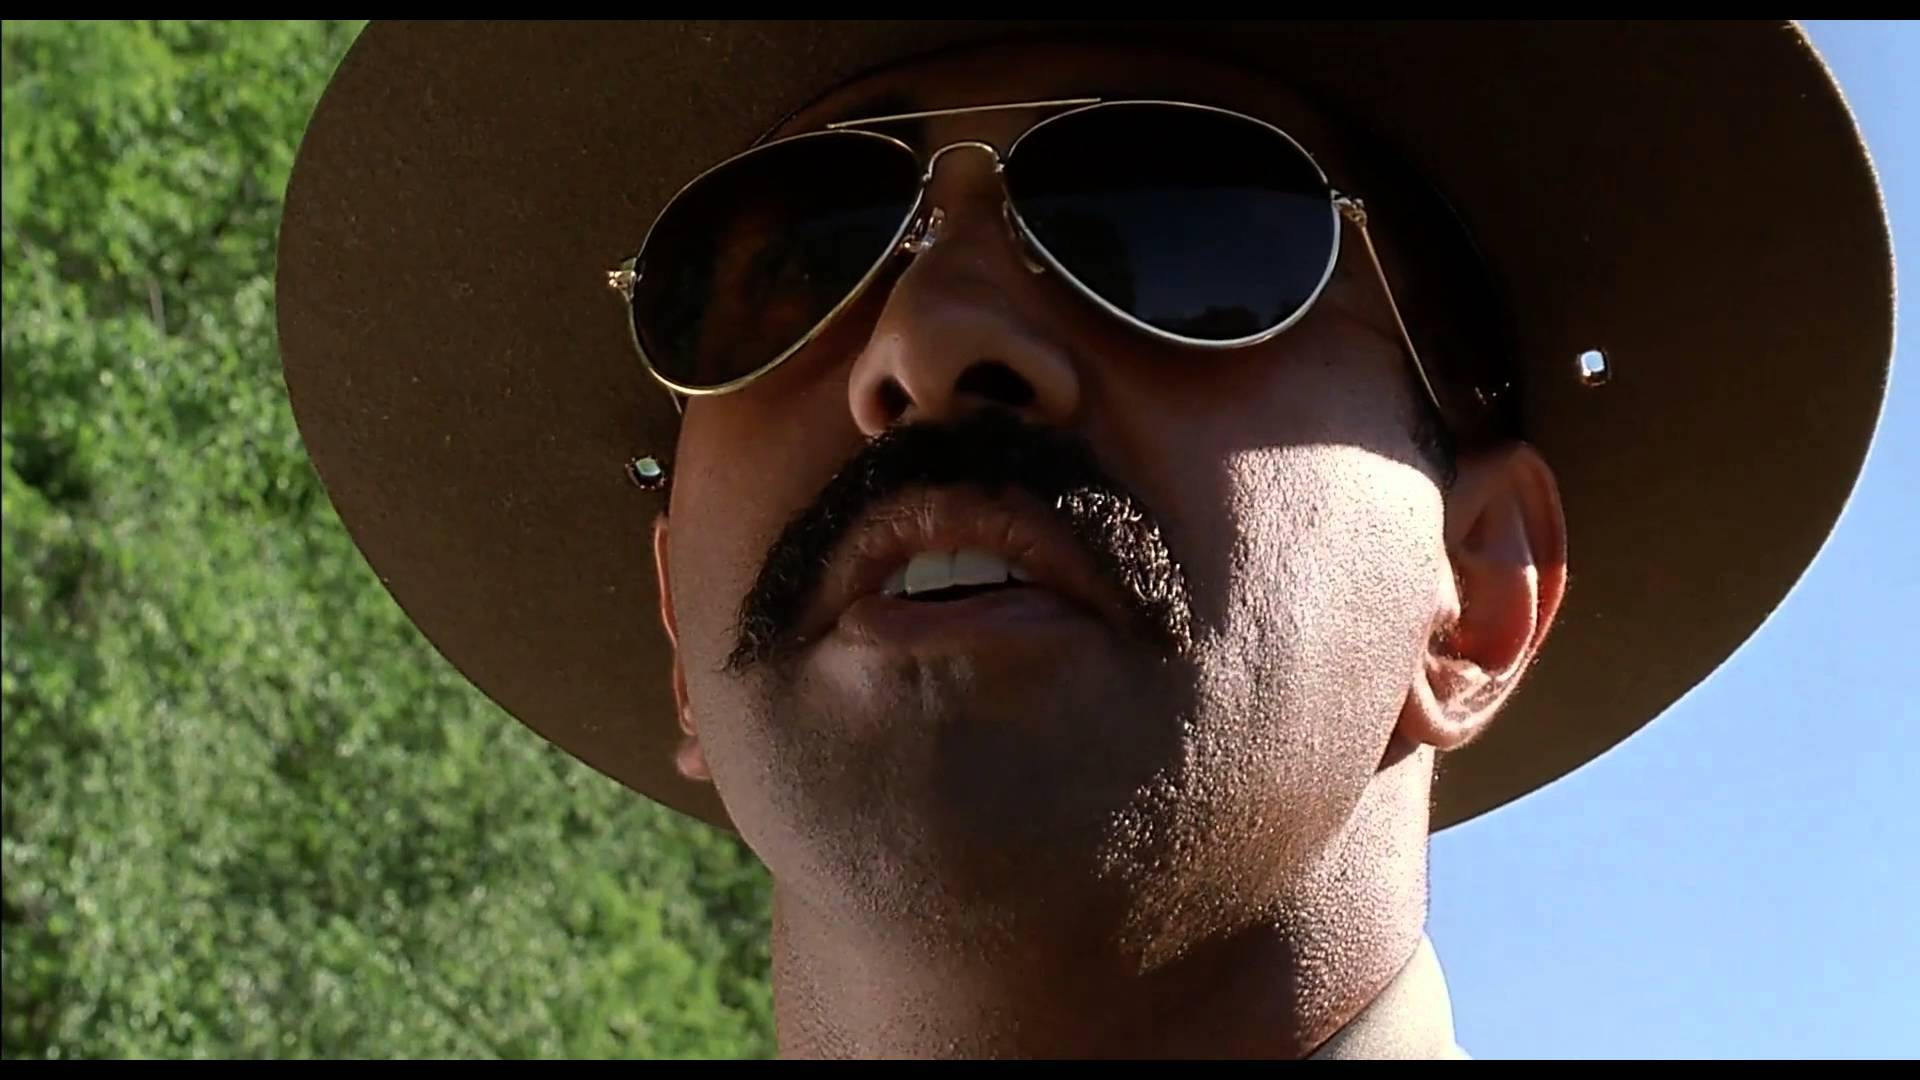 Ramathorn from Super Troopers, a key player in the War on Drugs